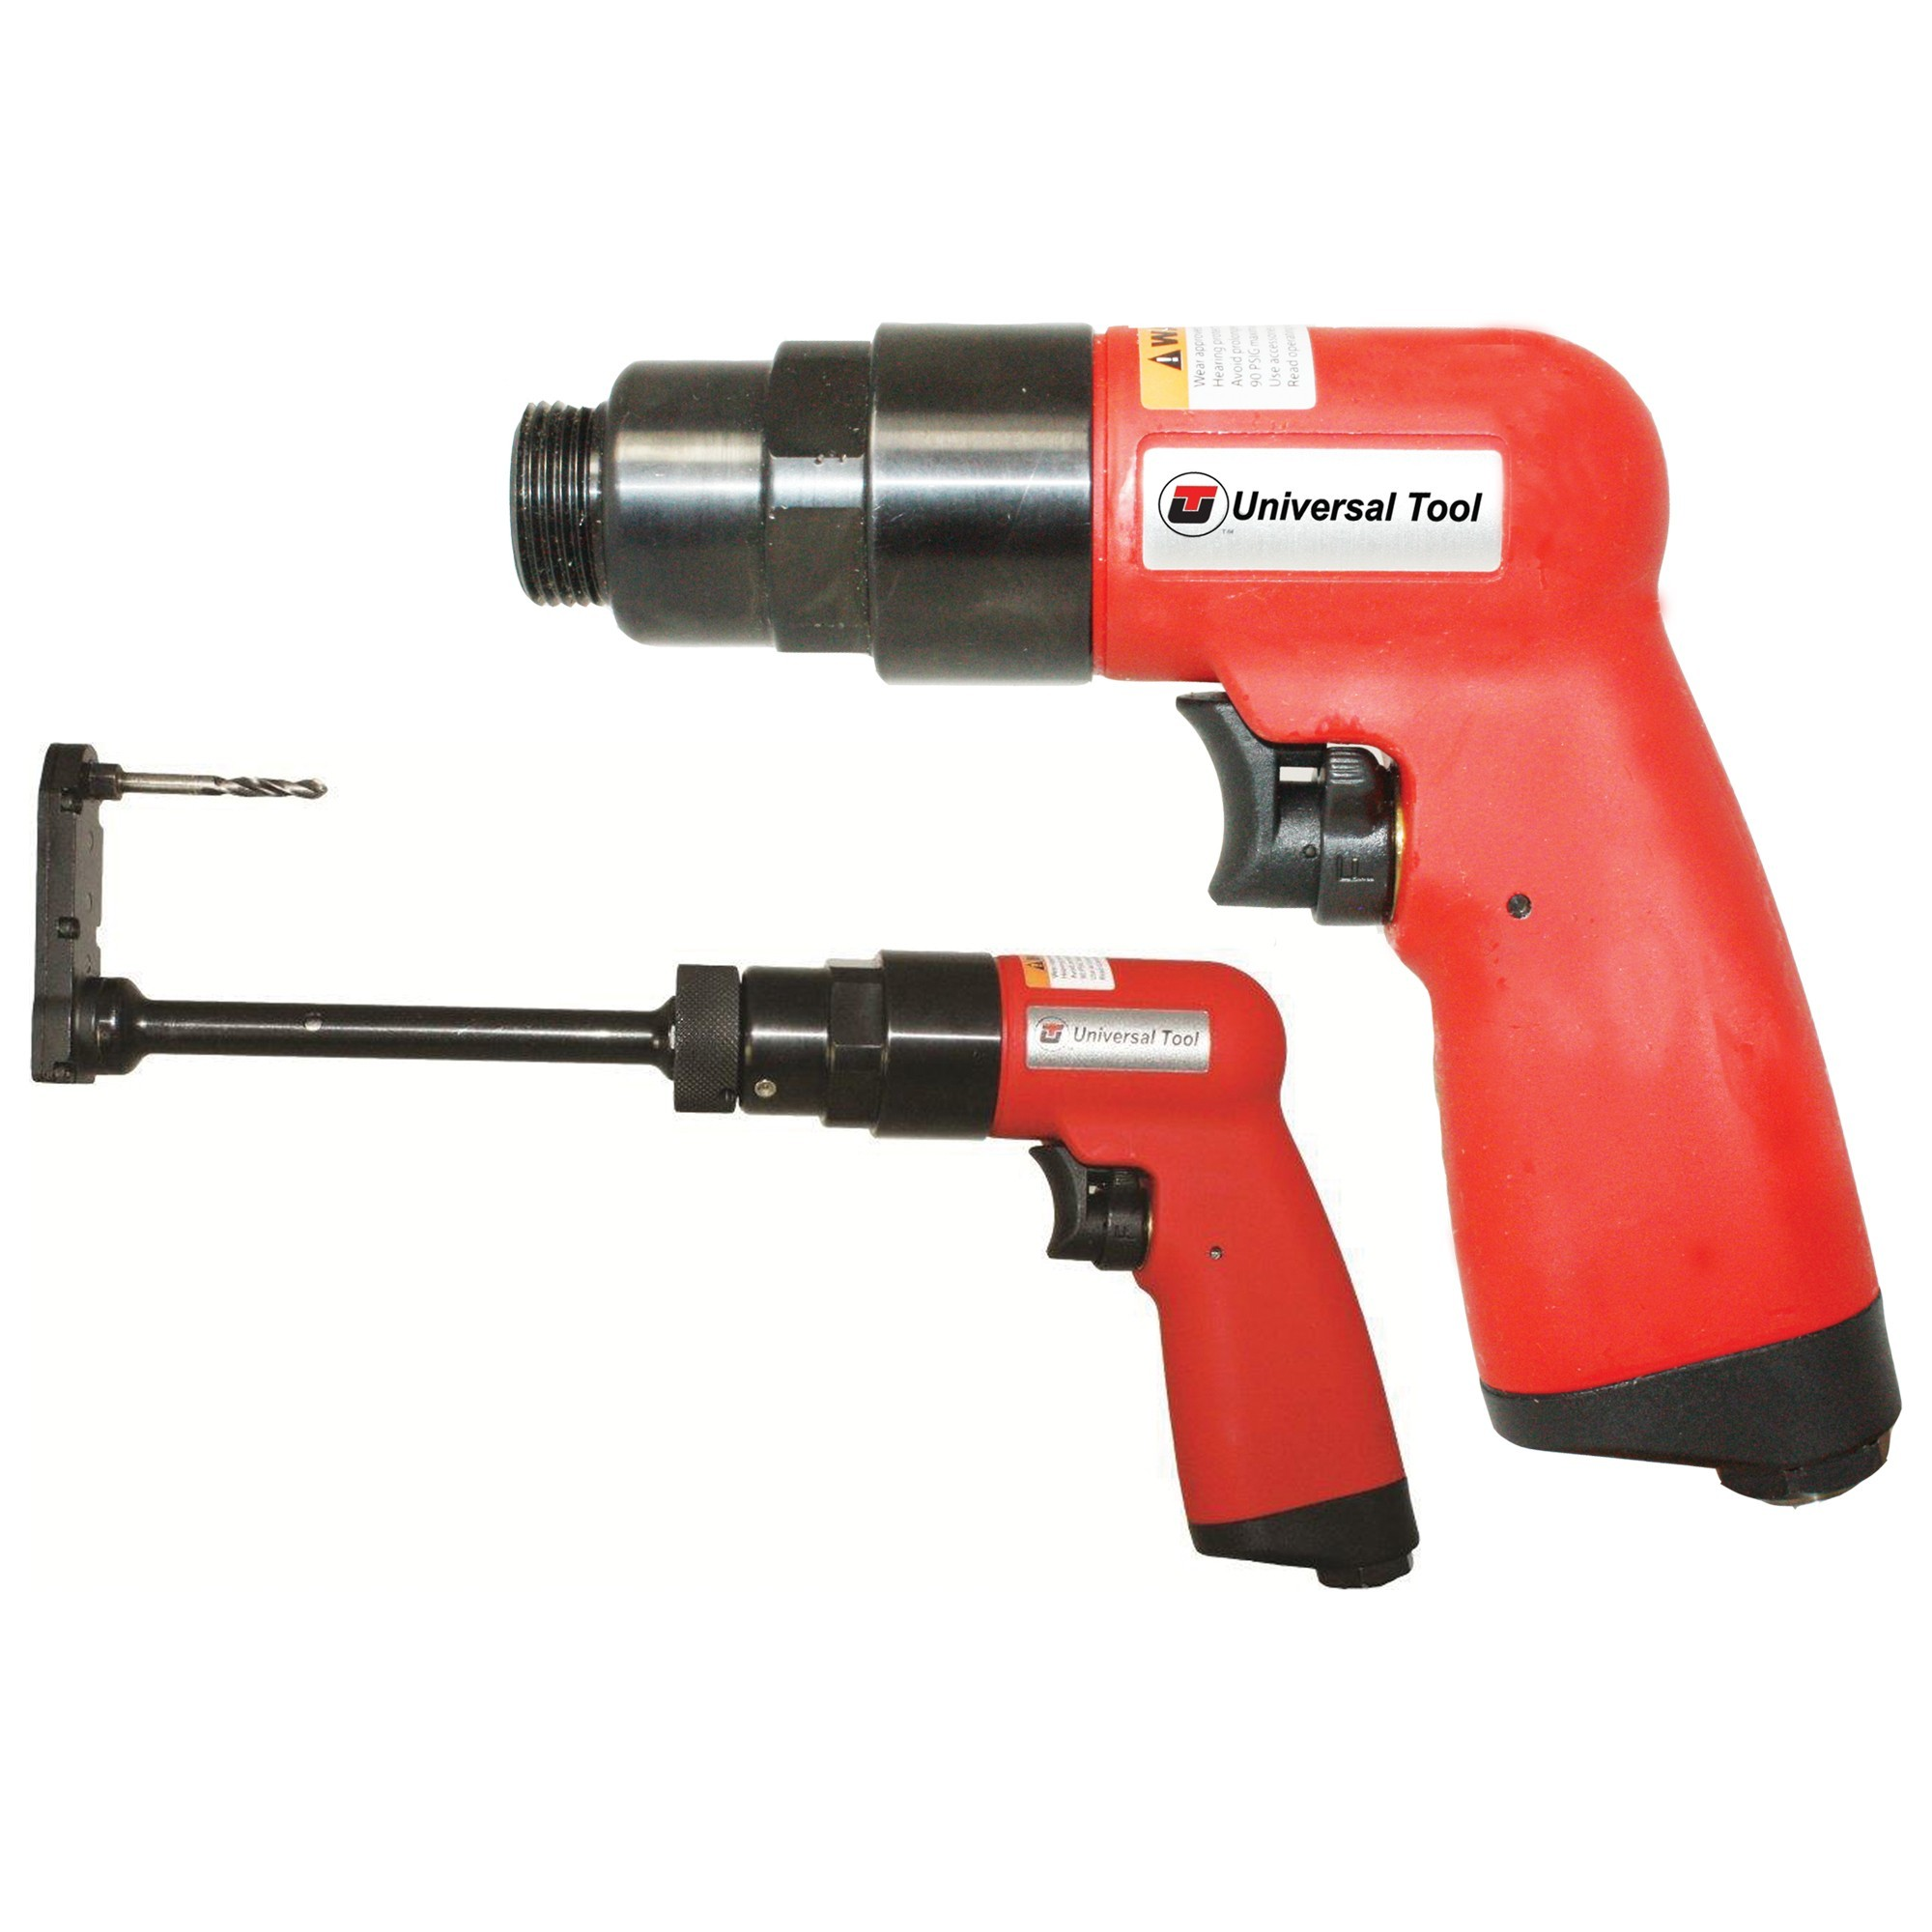 Aircraft Reversible Drill 3000 RPM